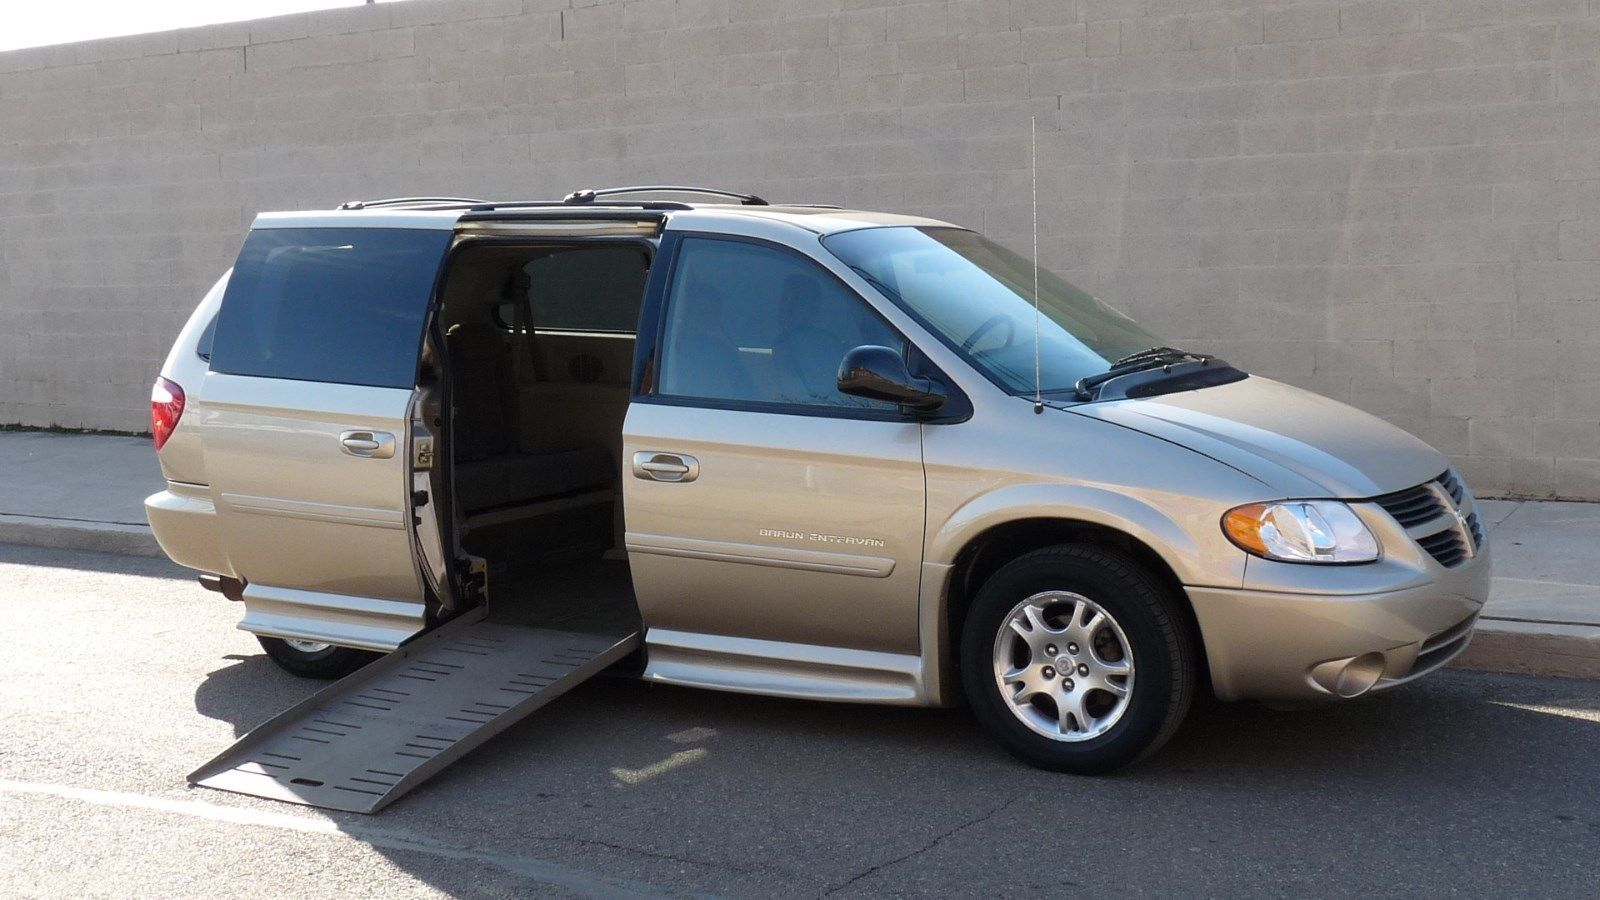 2006 Dodge Grand Caravan Accessibility Van Braun Entervan 2006